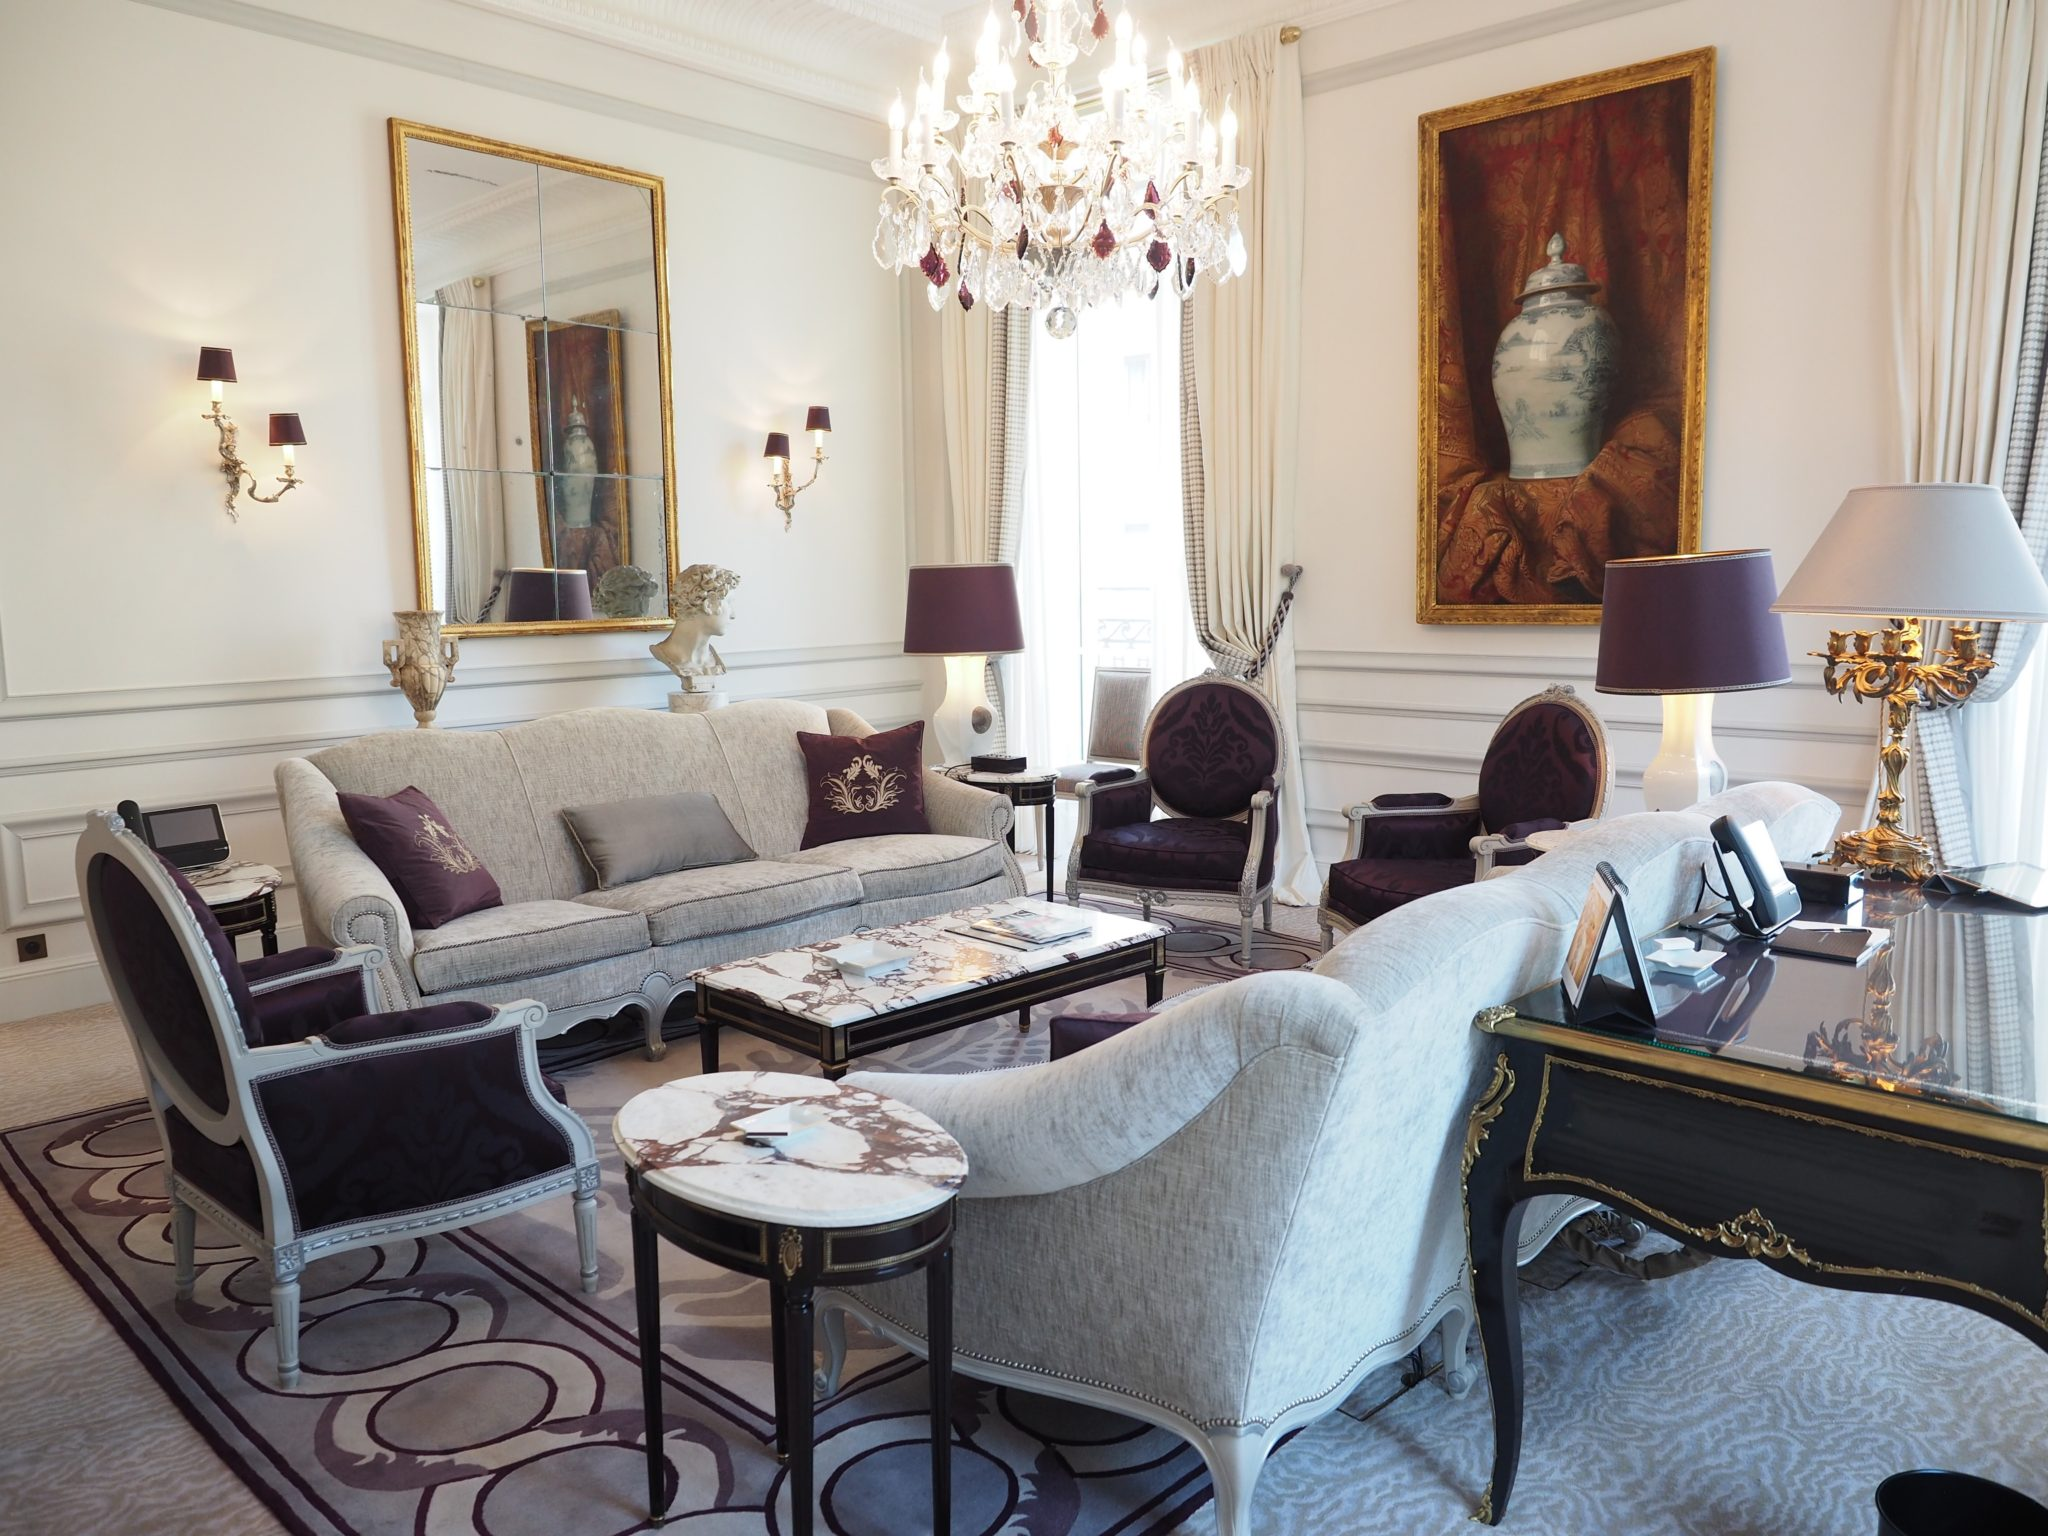 Step inside one of the best luxury hotels in Paris!